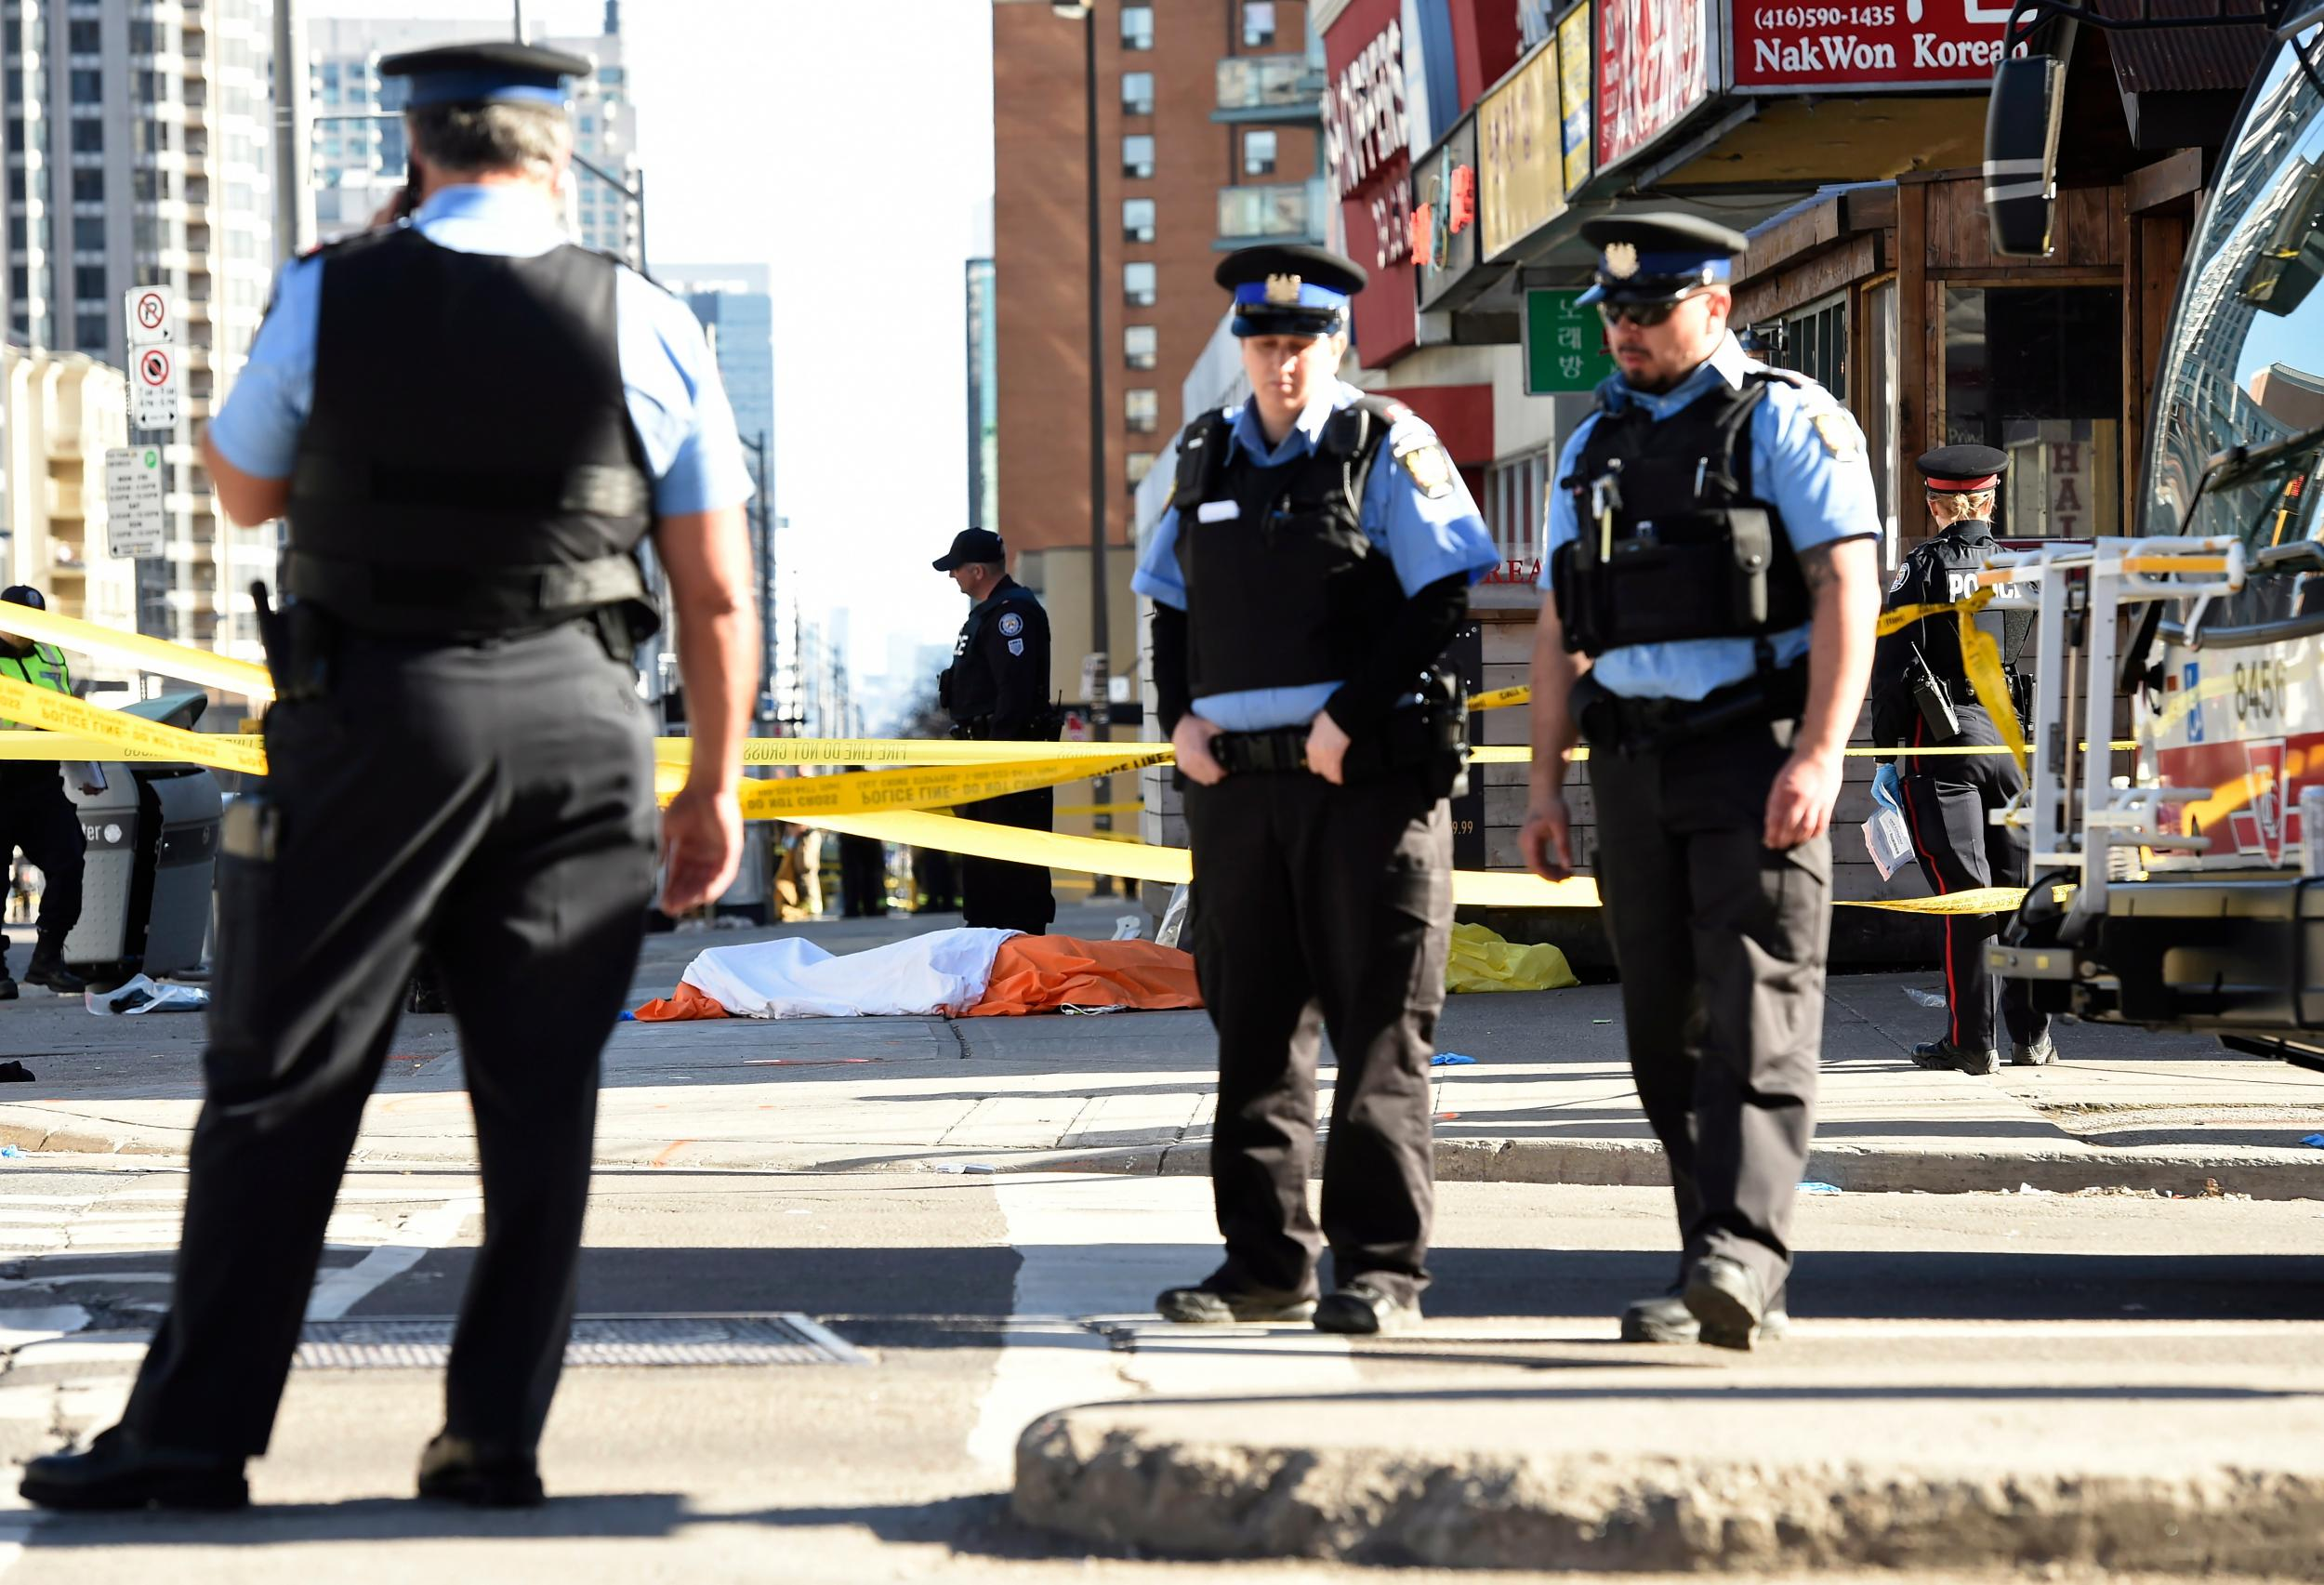 fd5eb95dcc The policeman who didn t shoot at Alek Minassian in Toronto is proof ...